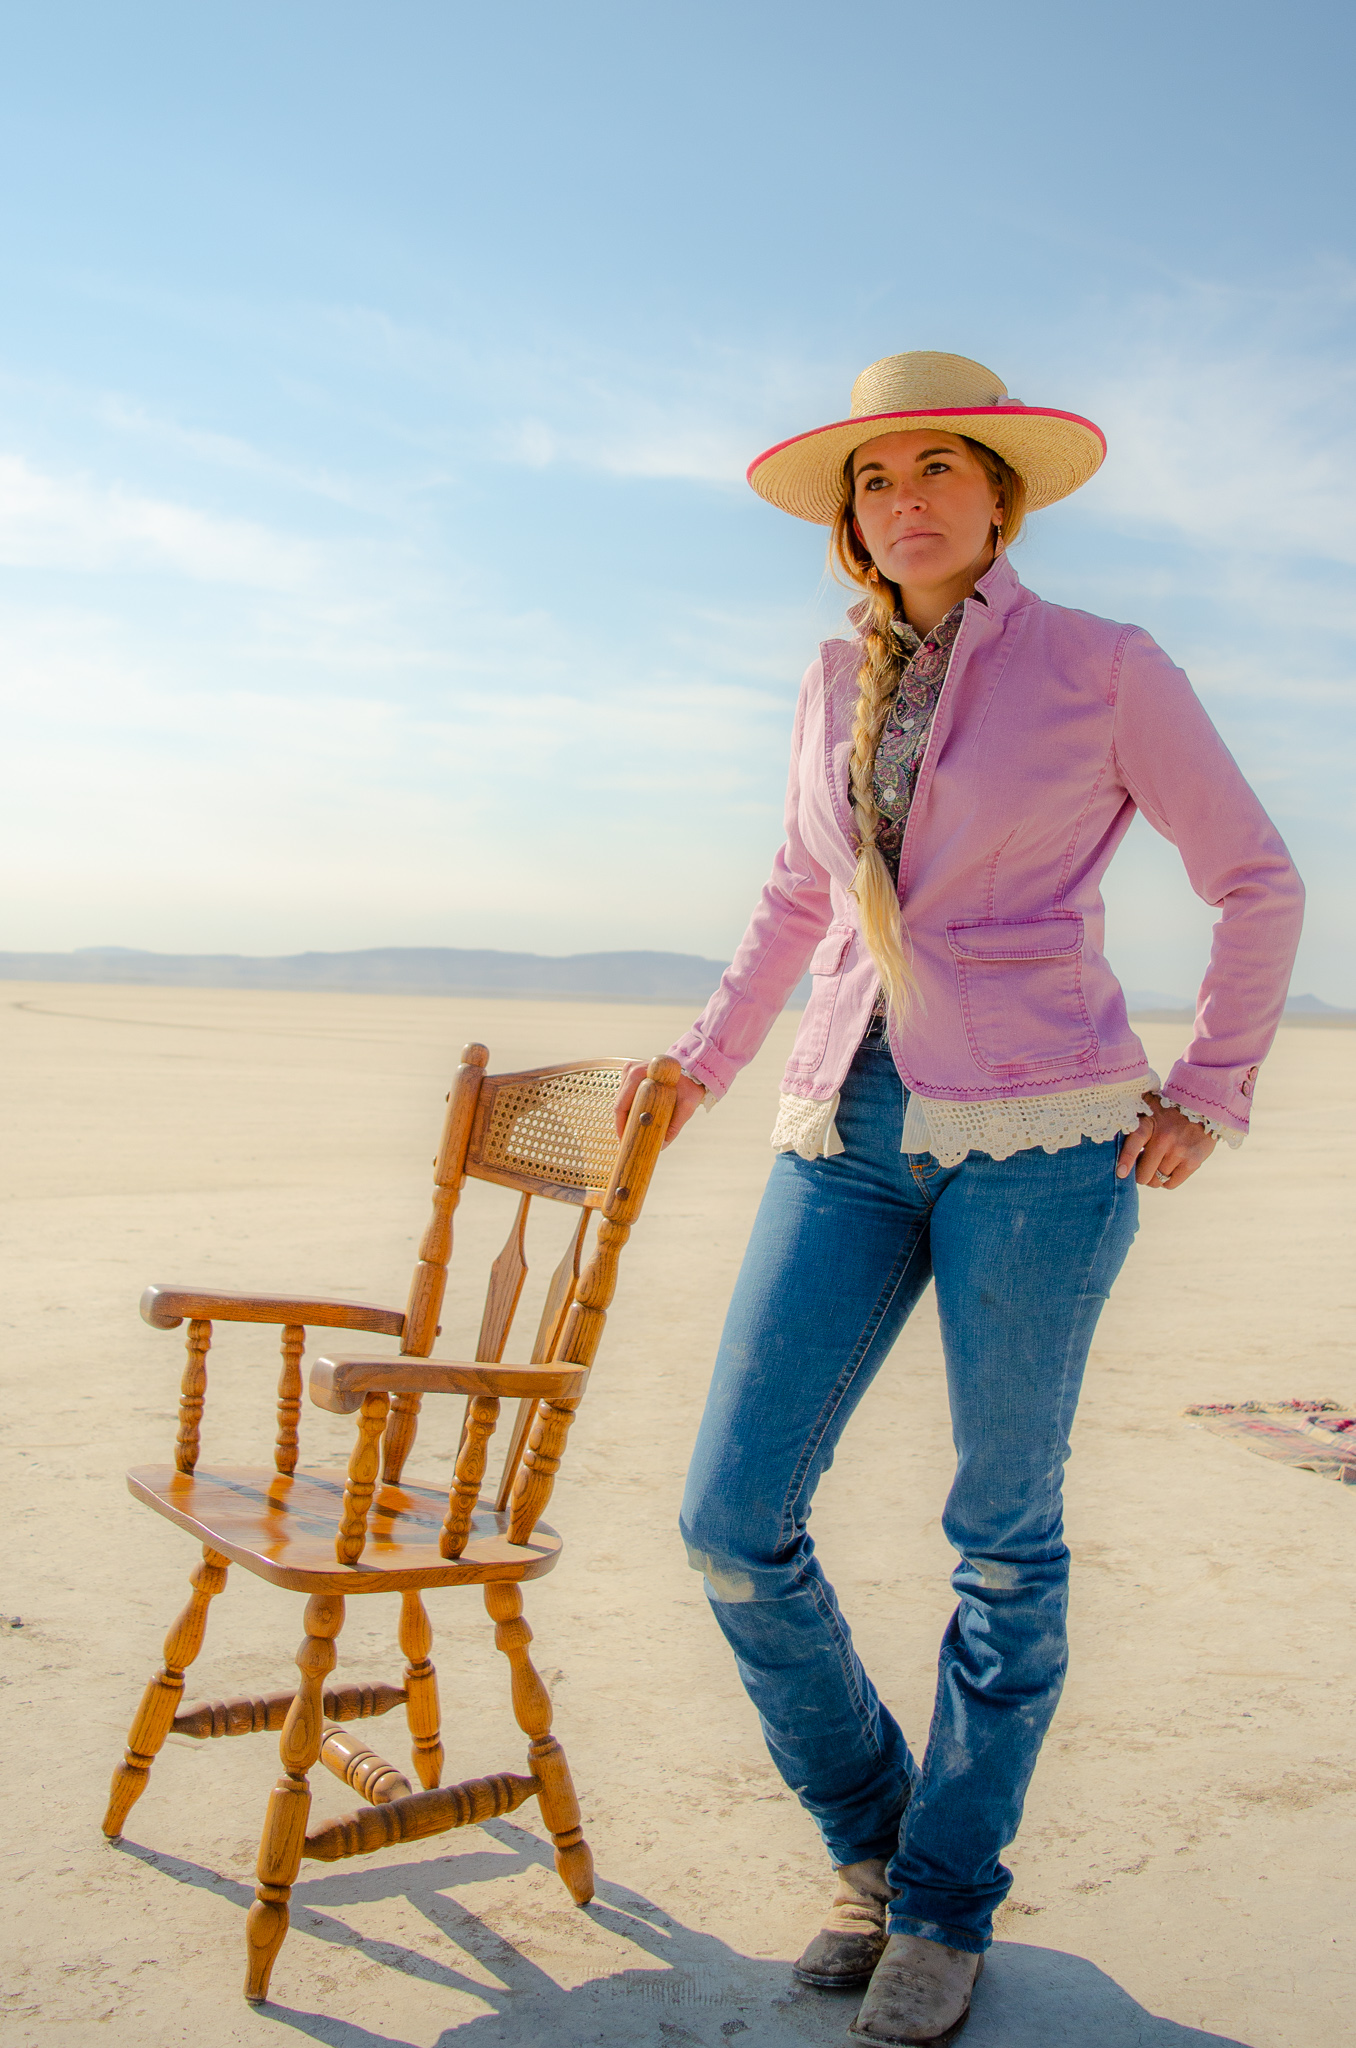 Morgan is oh-so-classy in this vintage, half-button paisley shirt and Desert Boutique re-worked jacked. Look also includes Kimes Ranch Jeans, a Sunbody hat, and Justin boots.